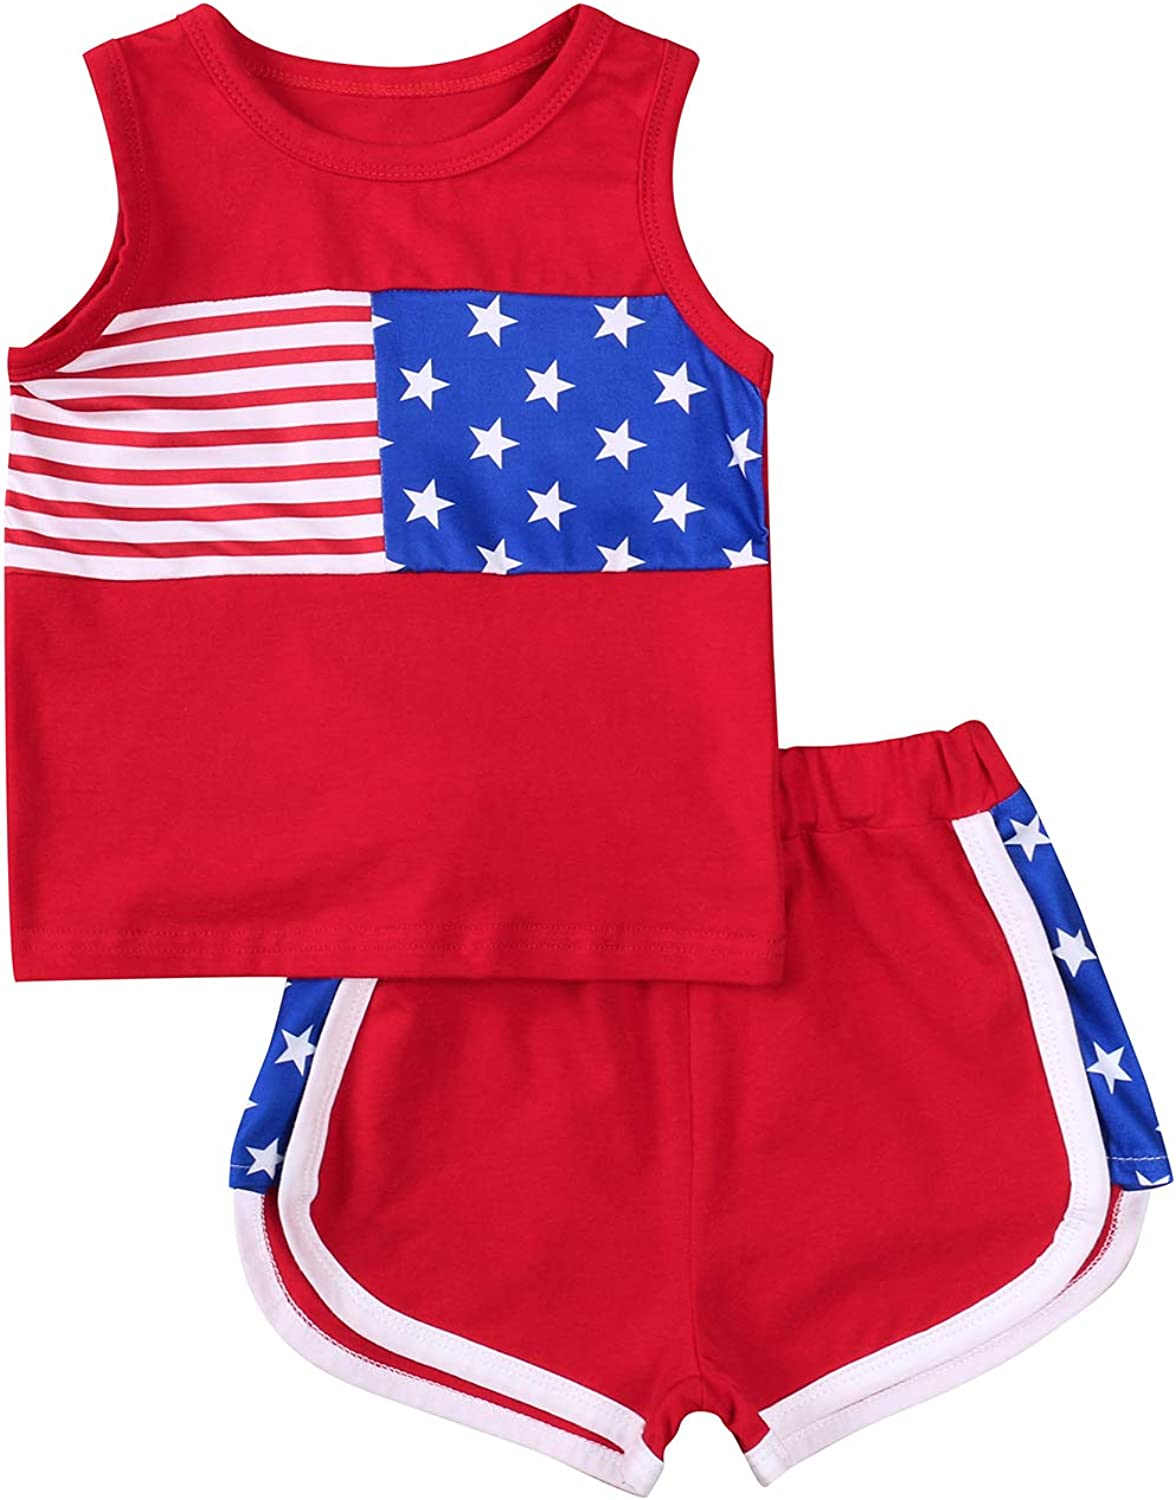 2Pcs Toddler Baby Boys USA Flag Print Sleeveless Vest Tops+Short Summer Outfits Set Independence Day